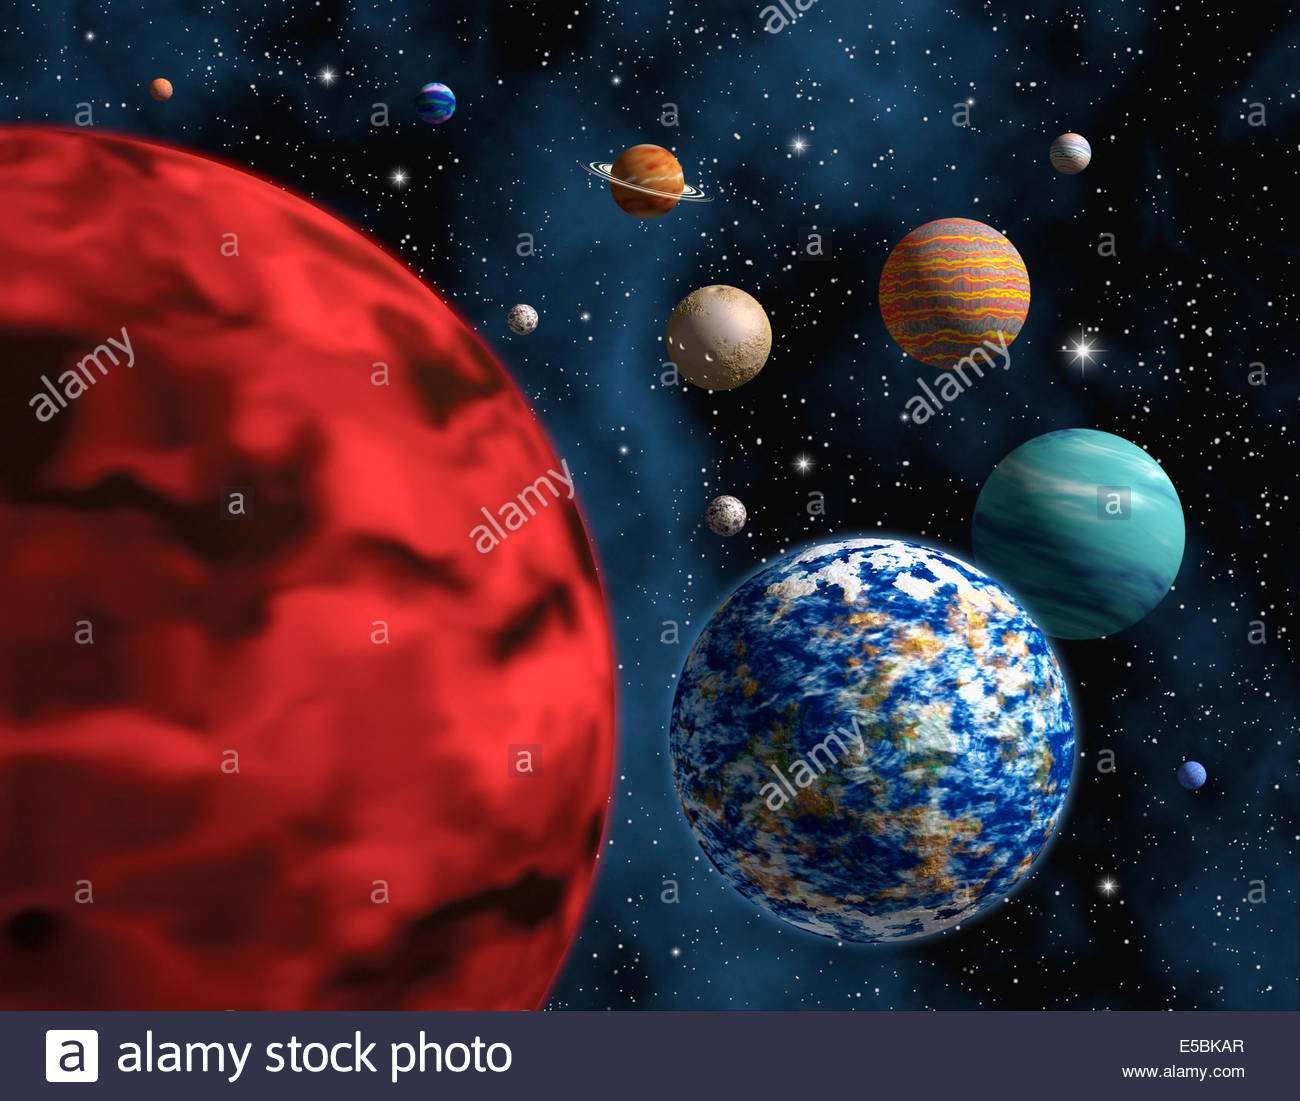 real pictures of planets and space - photo #31